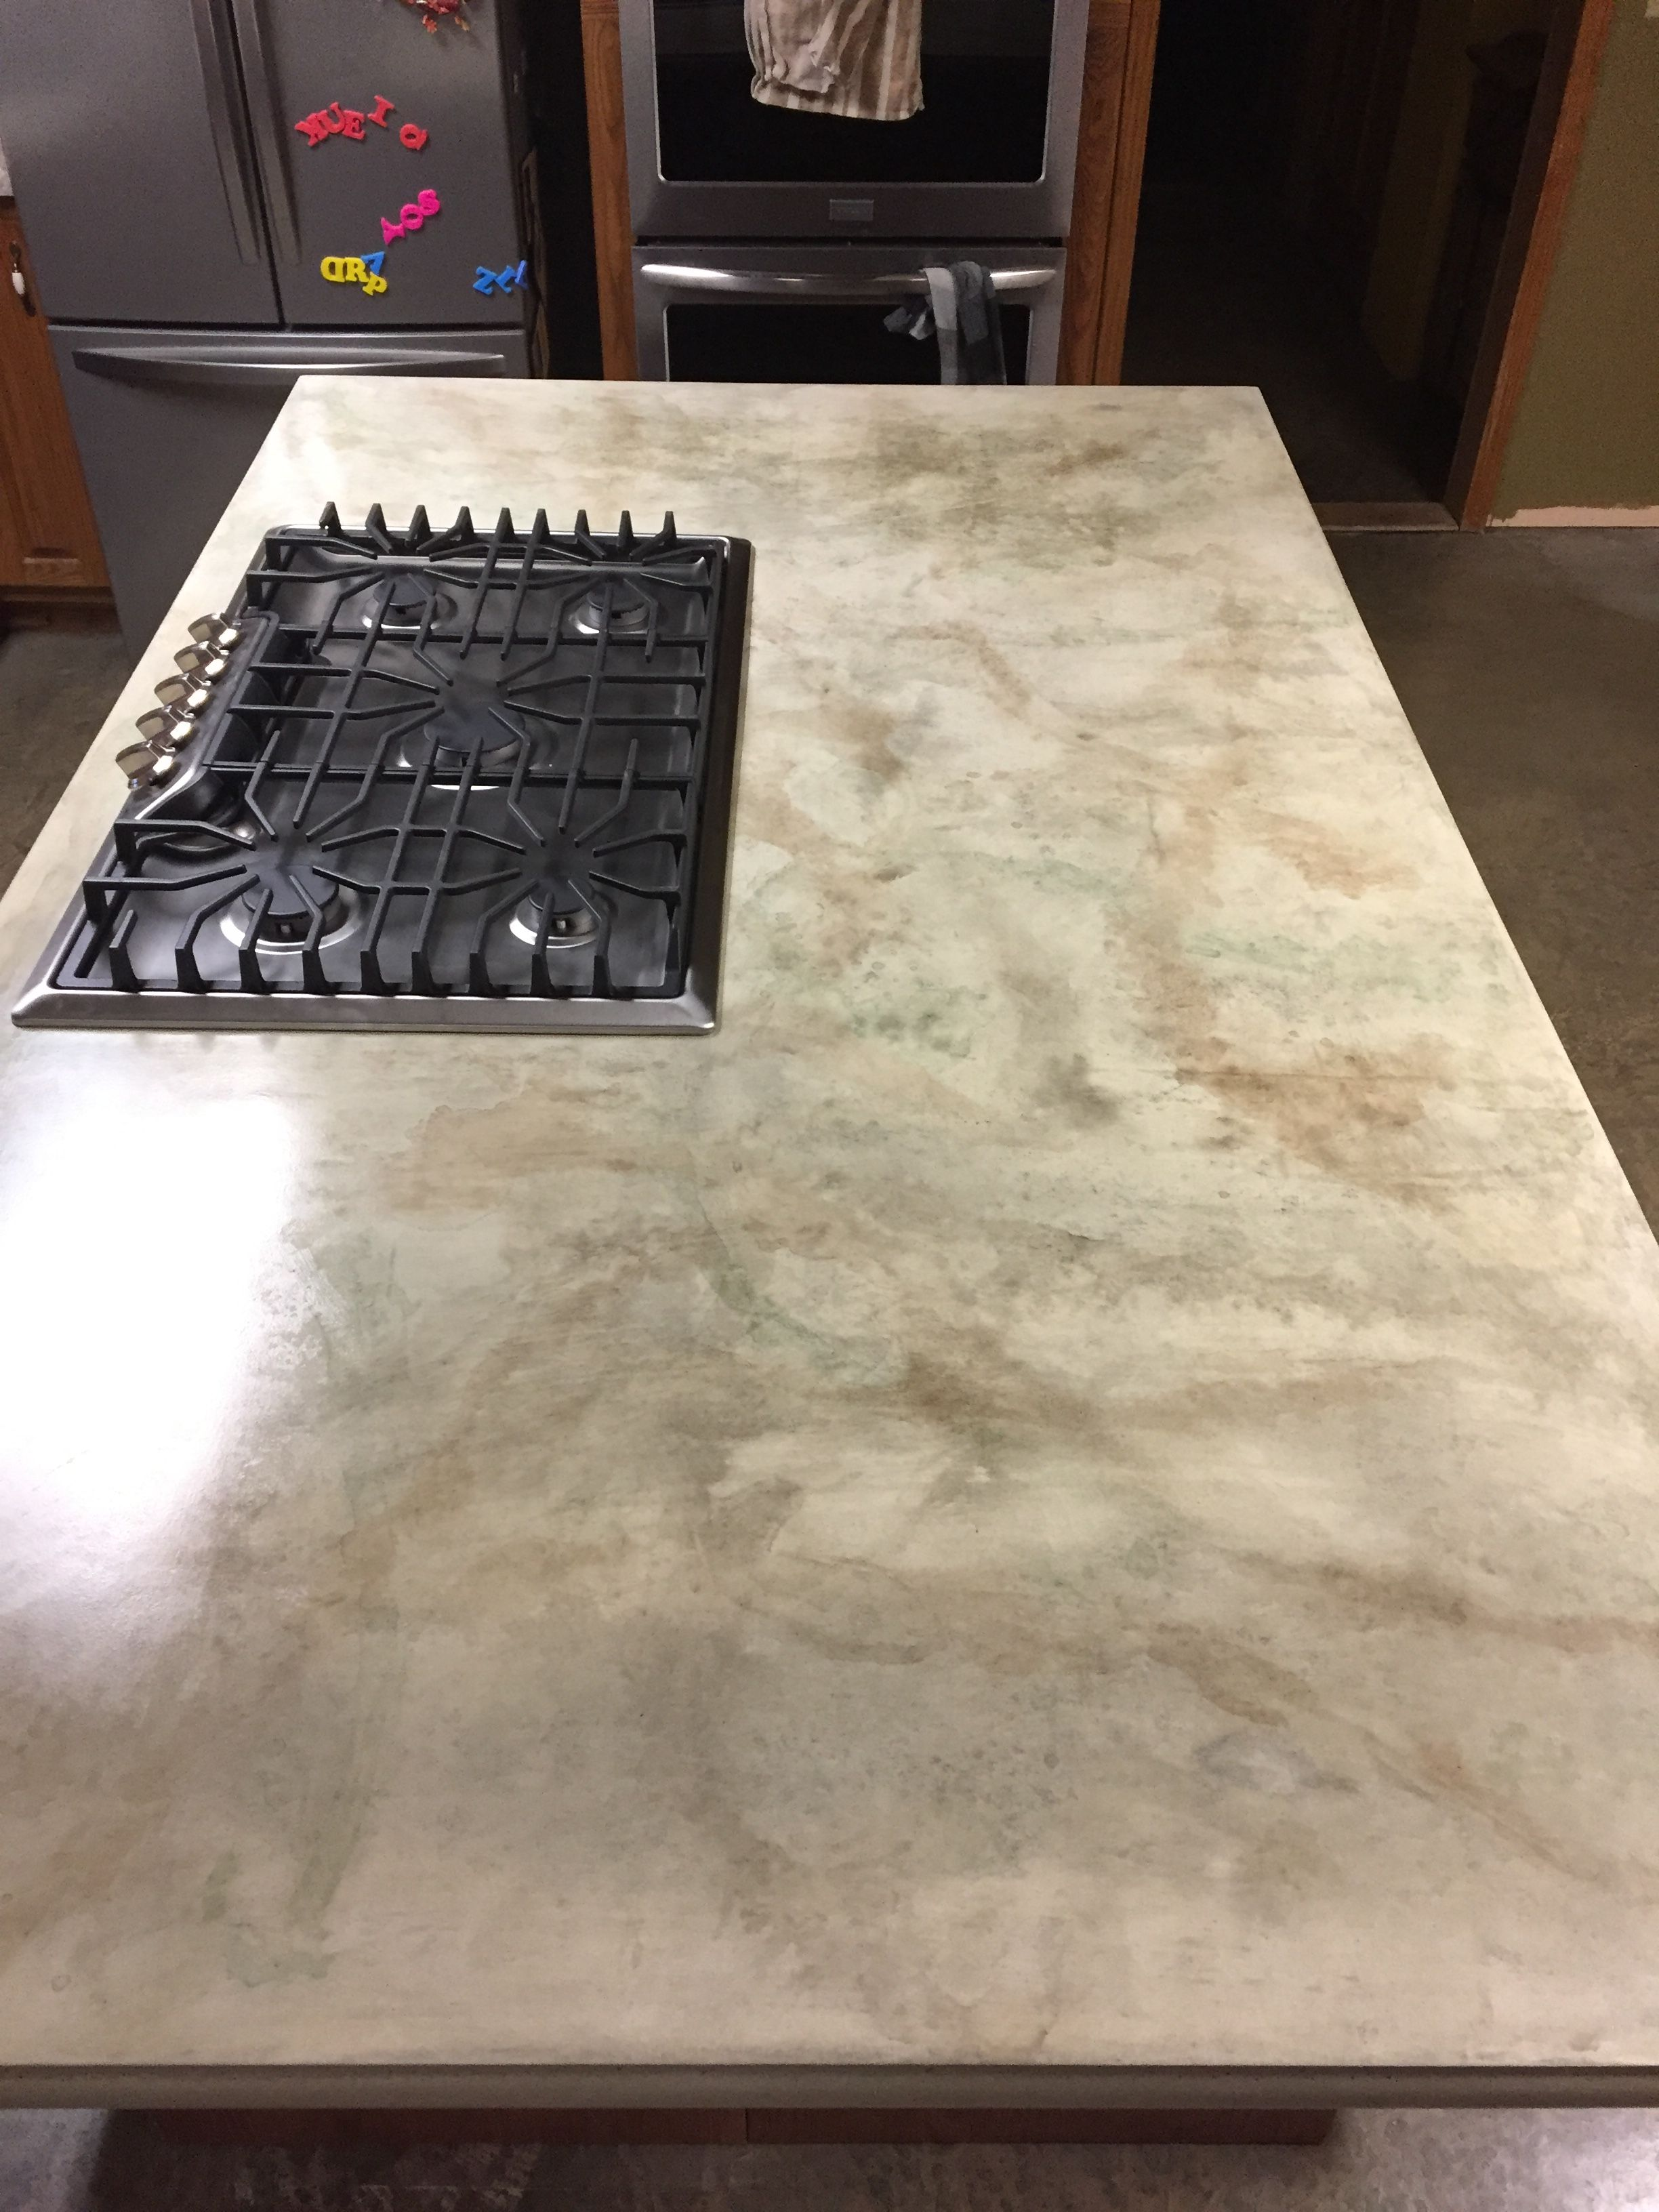 Concrete Countertop Made With Combination Of Tints Stains And Dyes